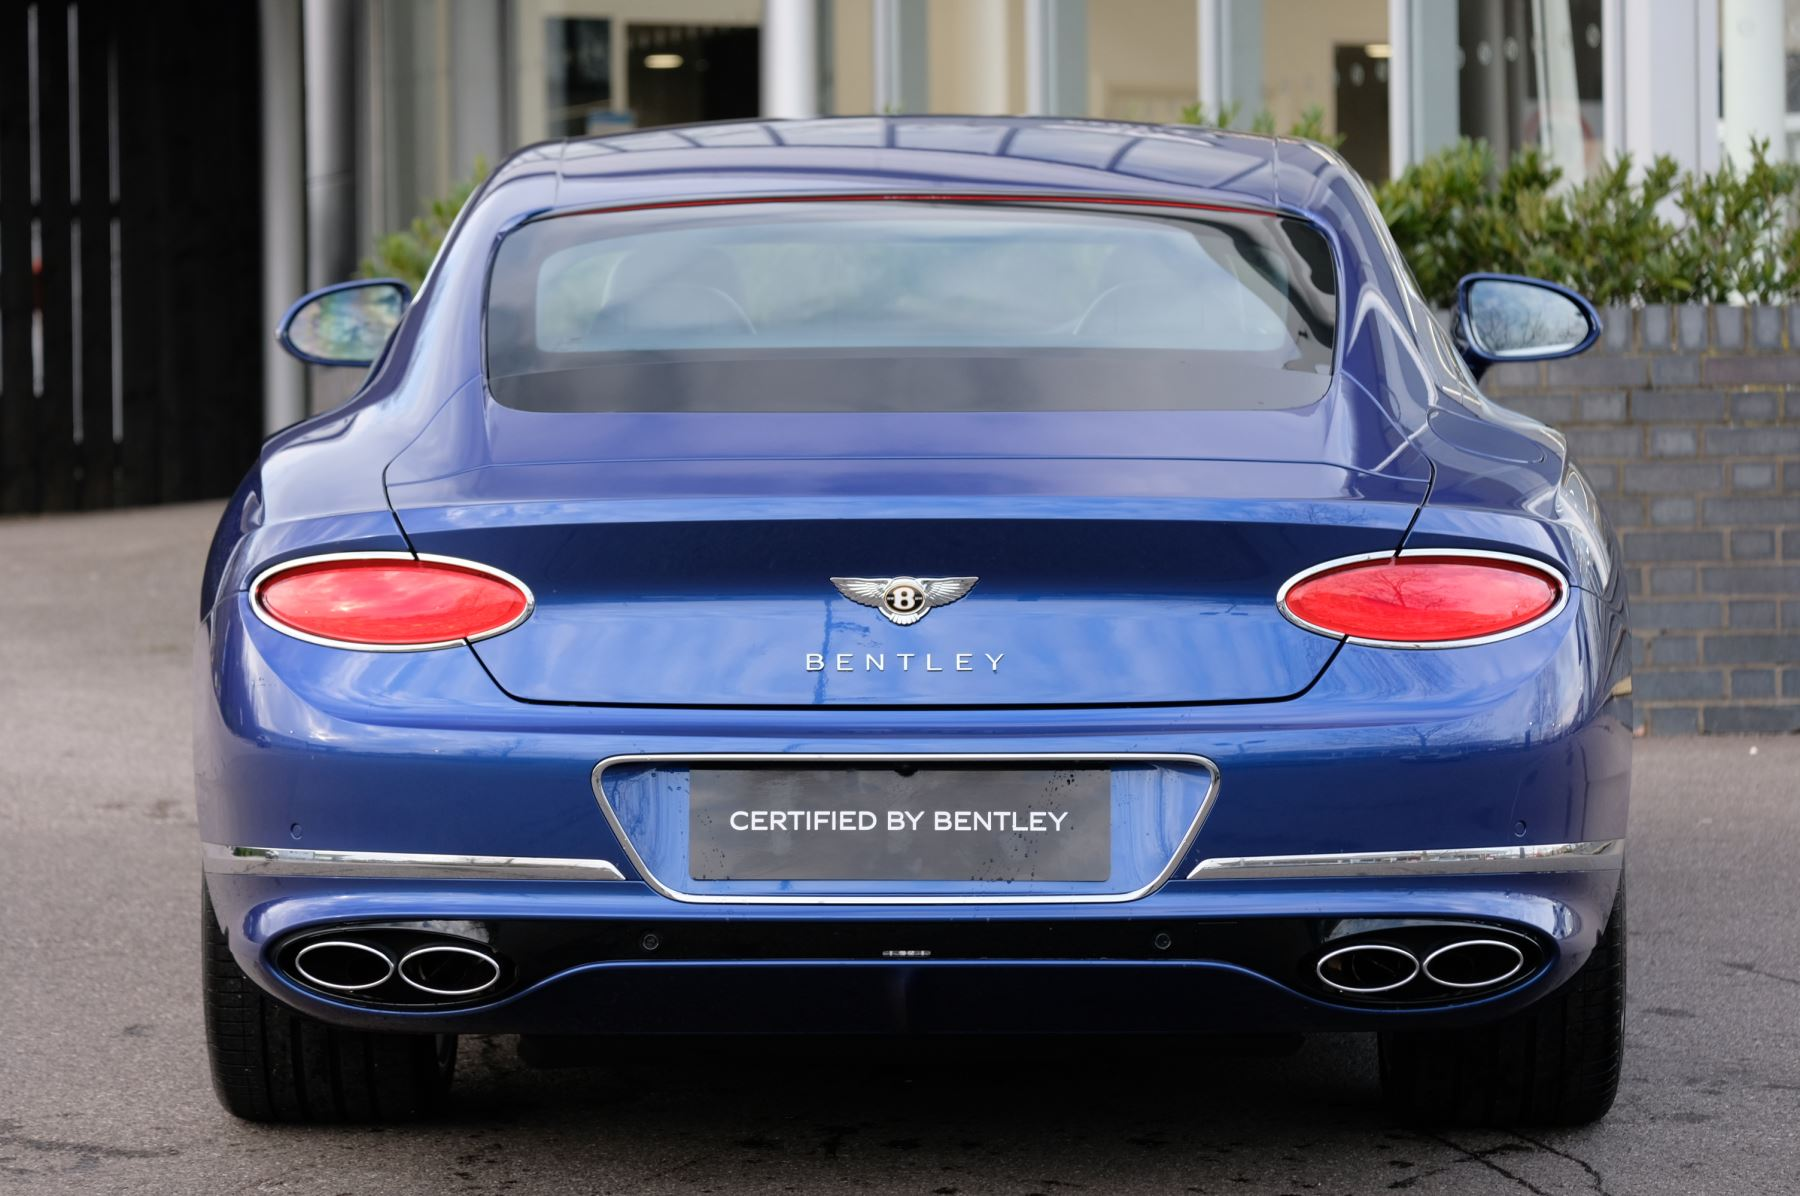 Bentley Continental GT 4.0 V8 Mulliner Driving Spec 2dr Auto - Centenary and Touring Specification image 4